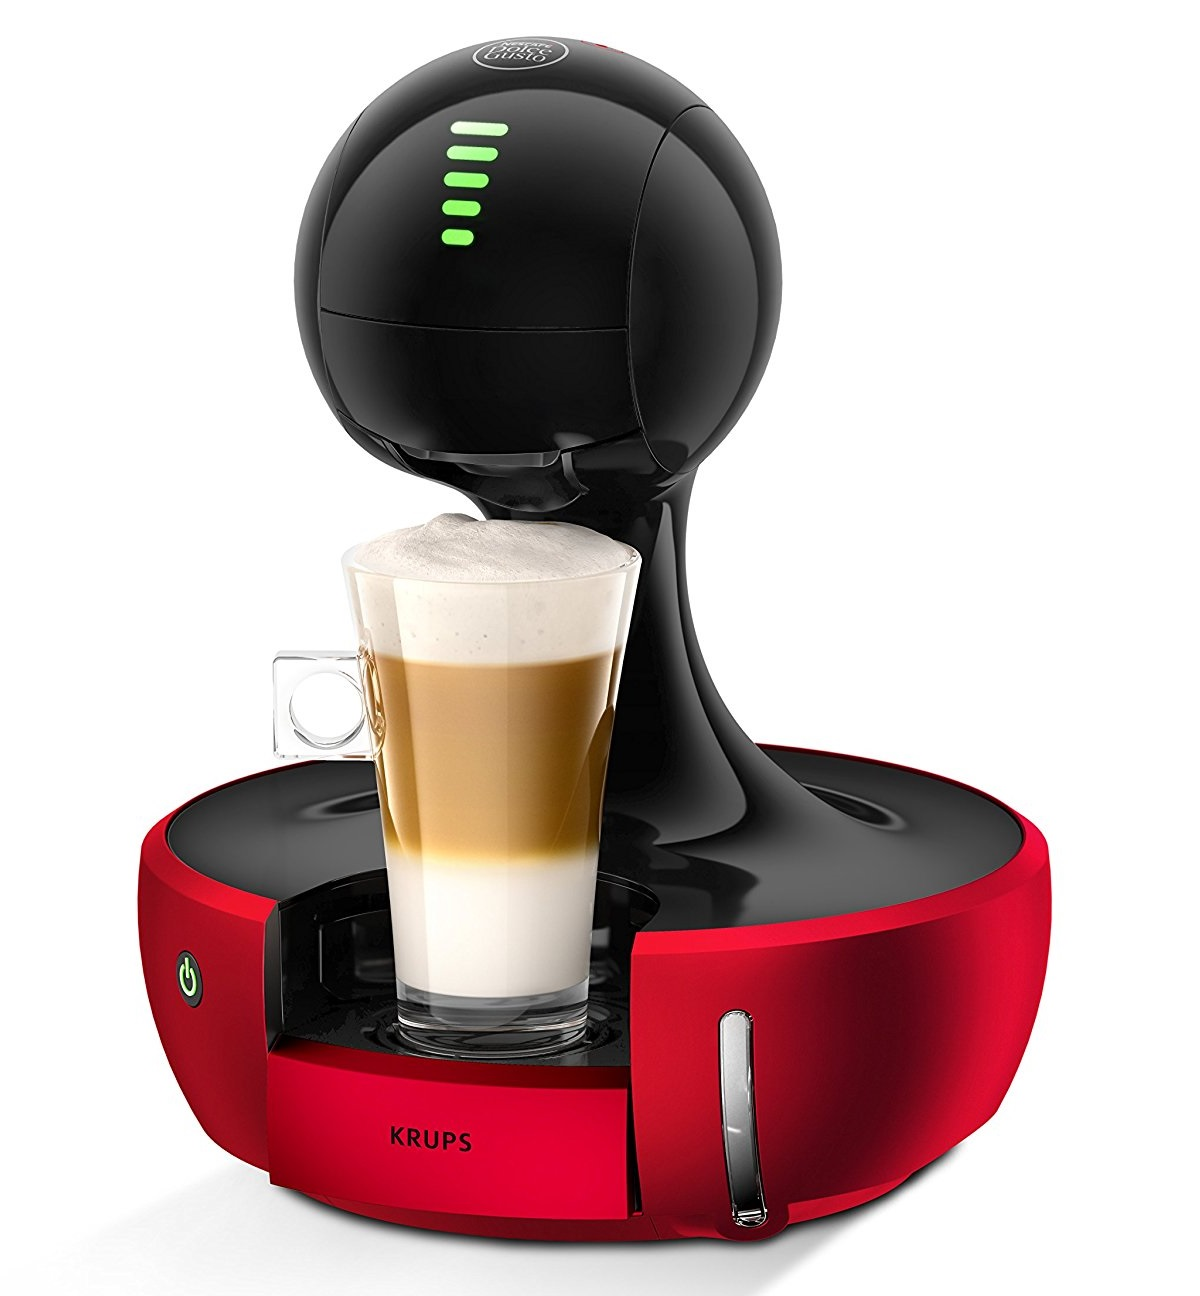 les meilleures machines caf krups dolce gusto. Black Bedroom Furniture Sets. Home Design Ideas